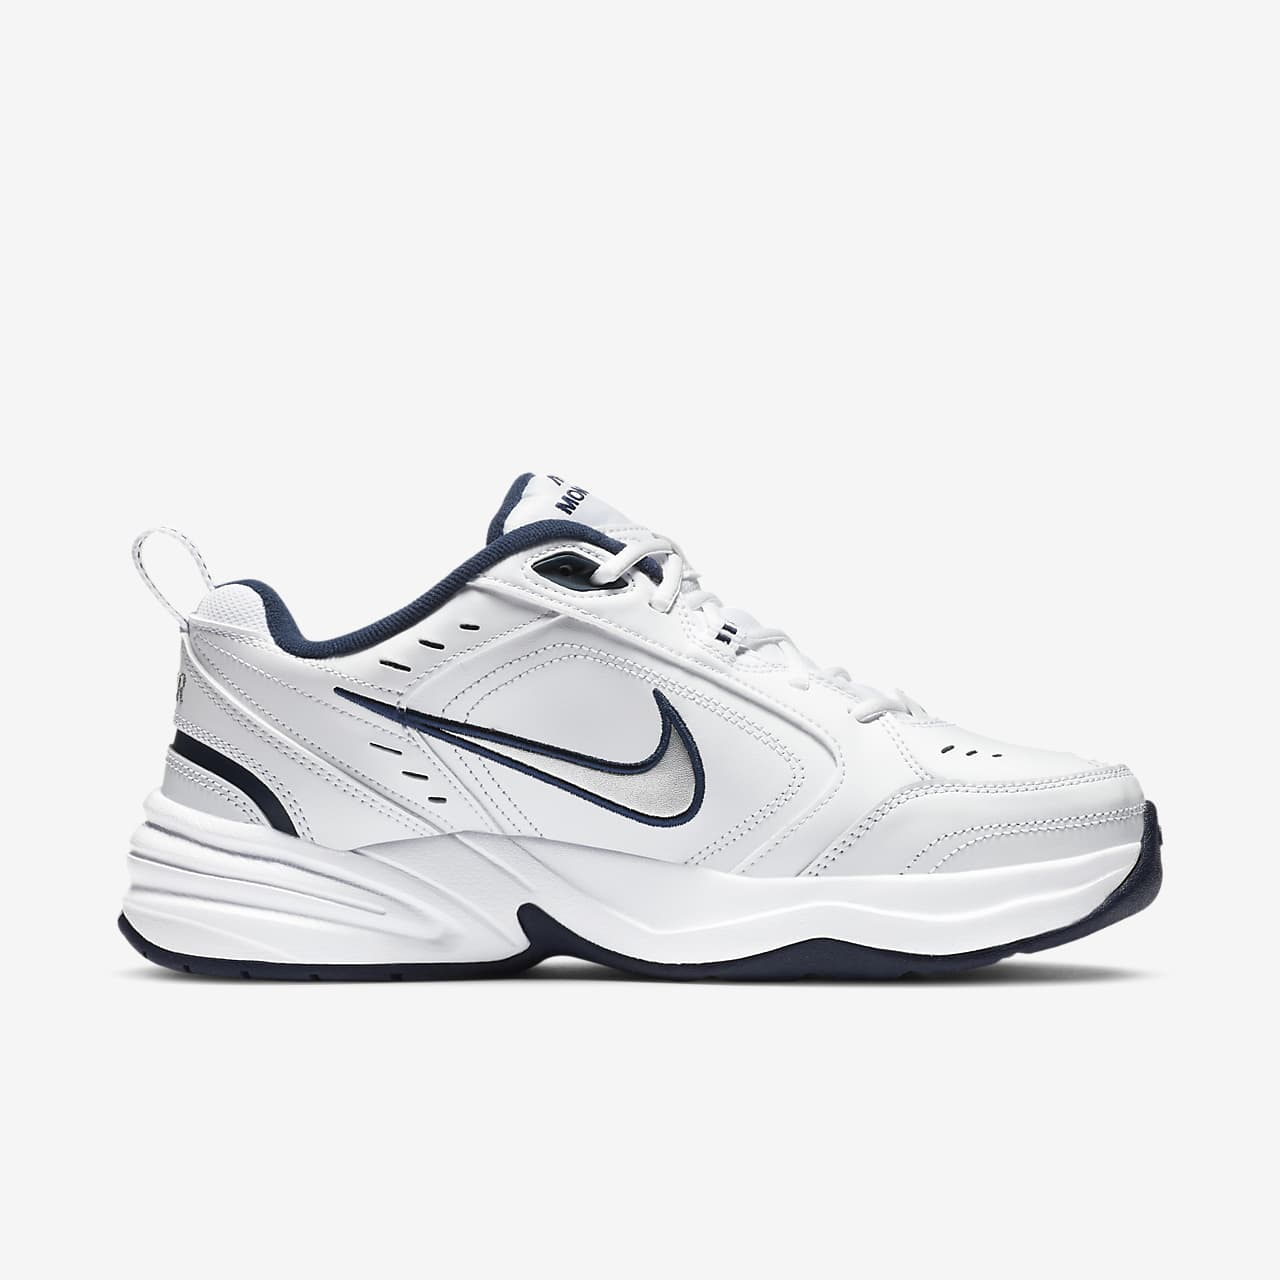 65daa3402df86 Nike Air Monarch IV Lifestyle/Gym Shoe. Nike.com GB